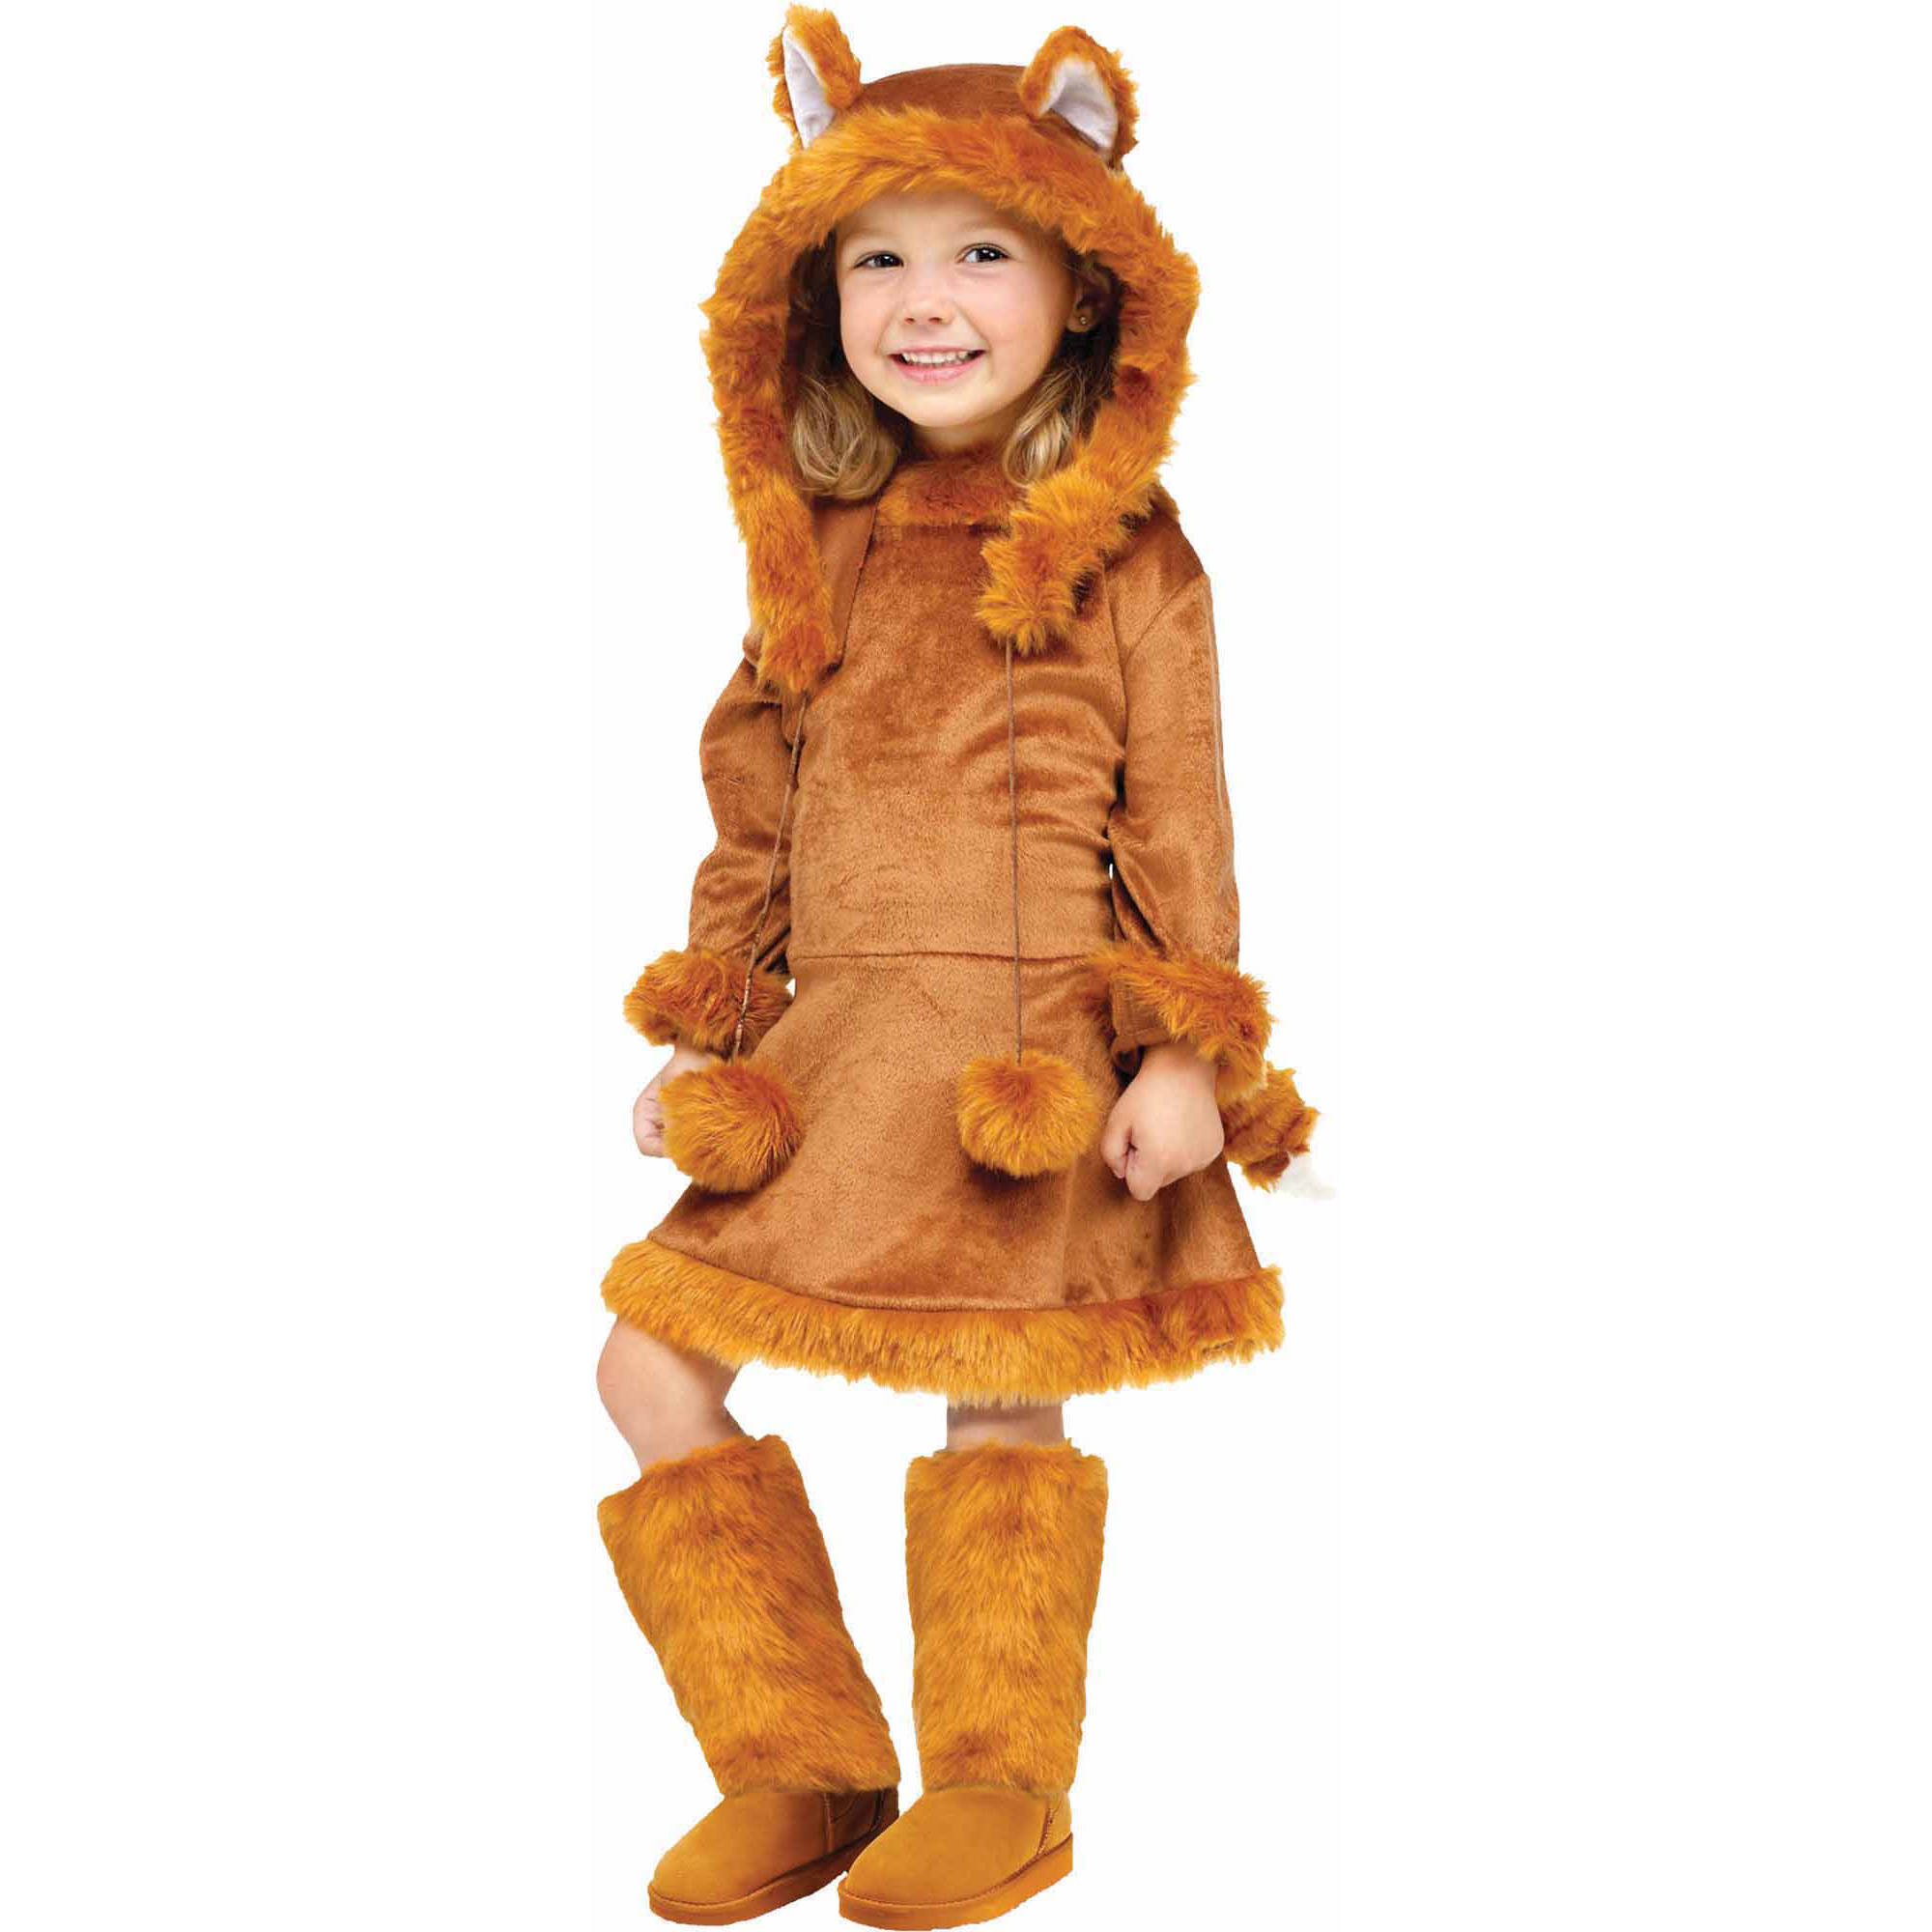 sc 1 st  Walmart & Sweet Fox Child Halloween Costume - Walmart.com